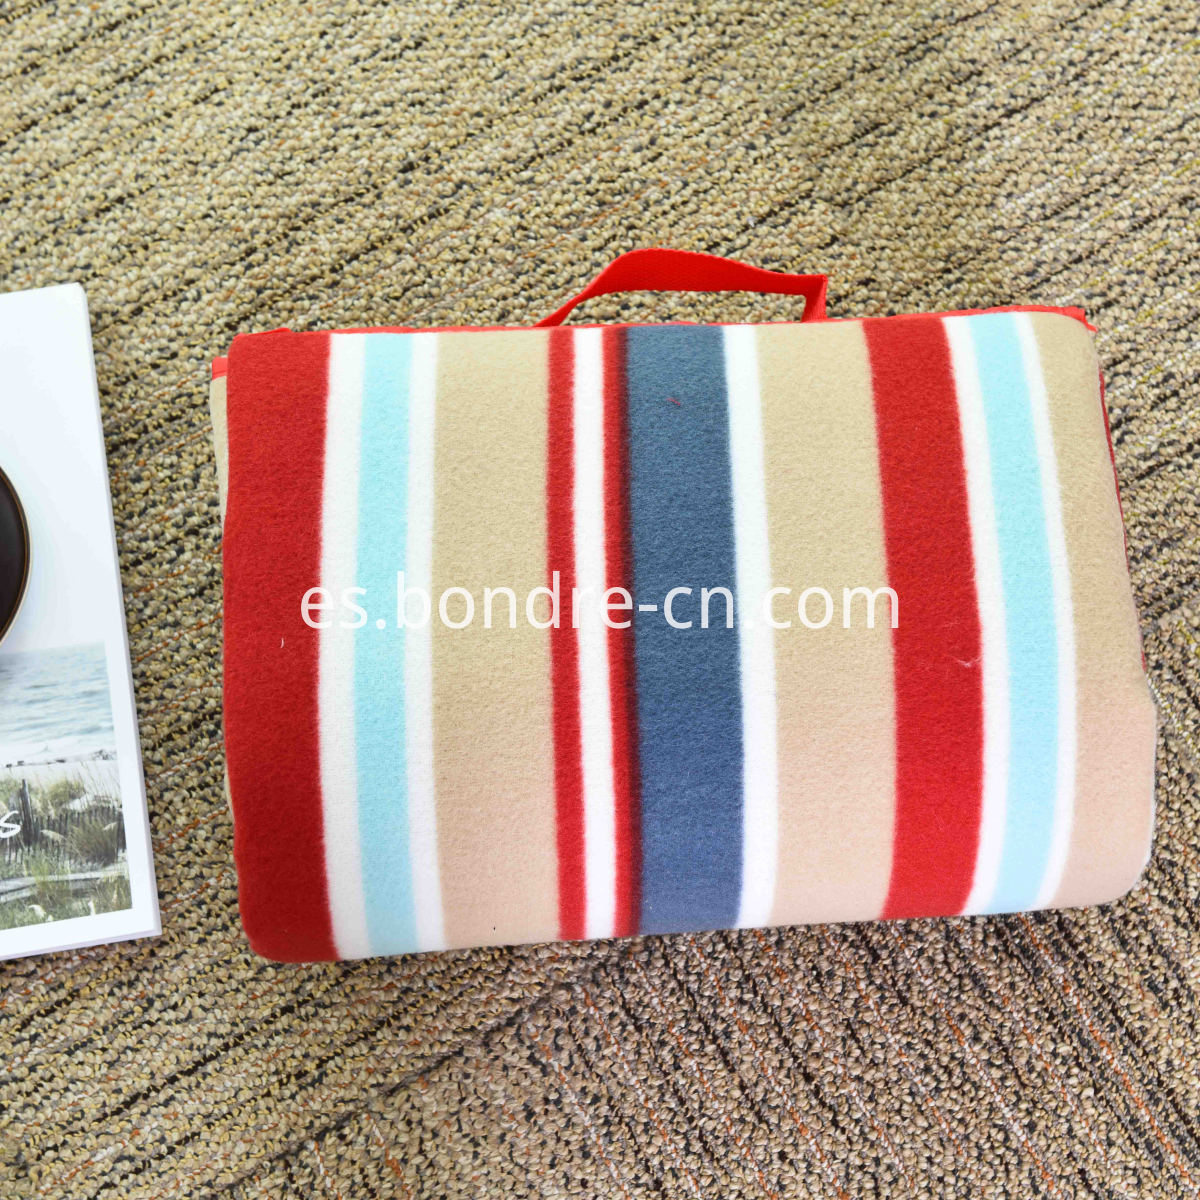 Picnic Mat With Foldable Design (1)